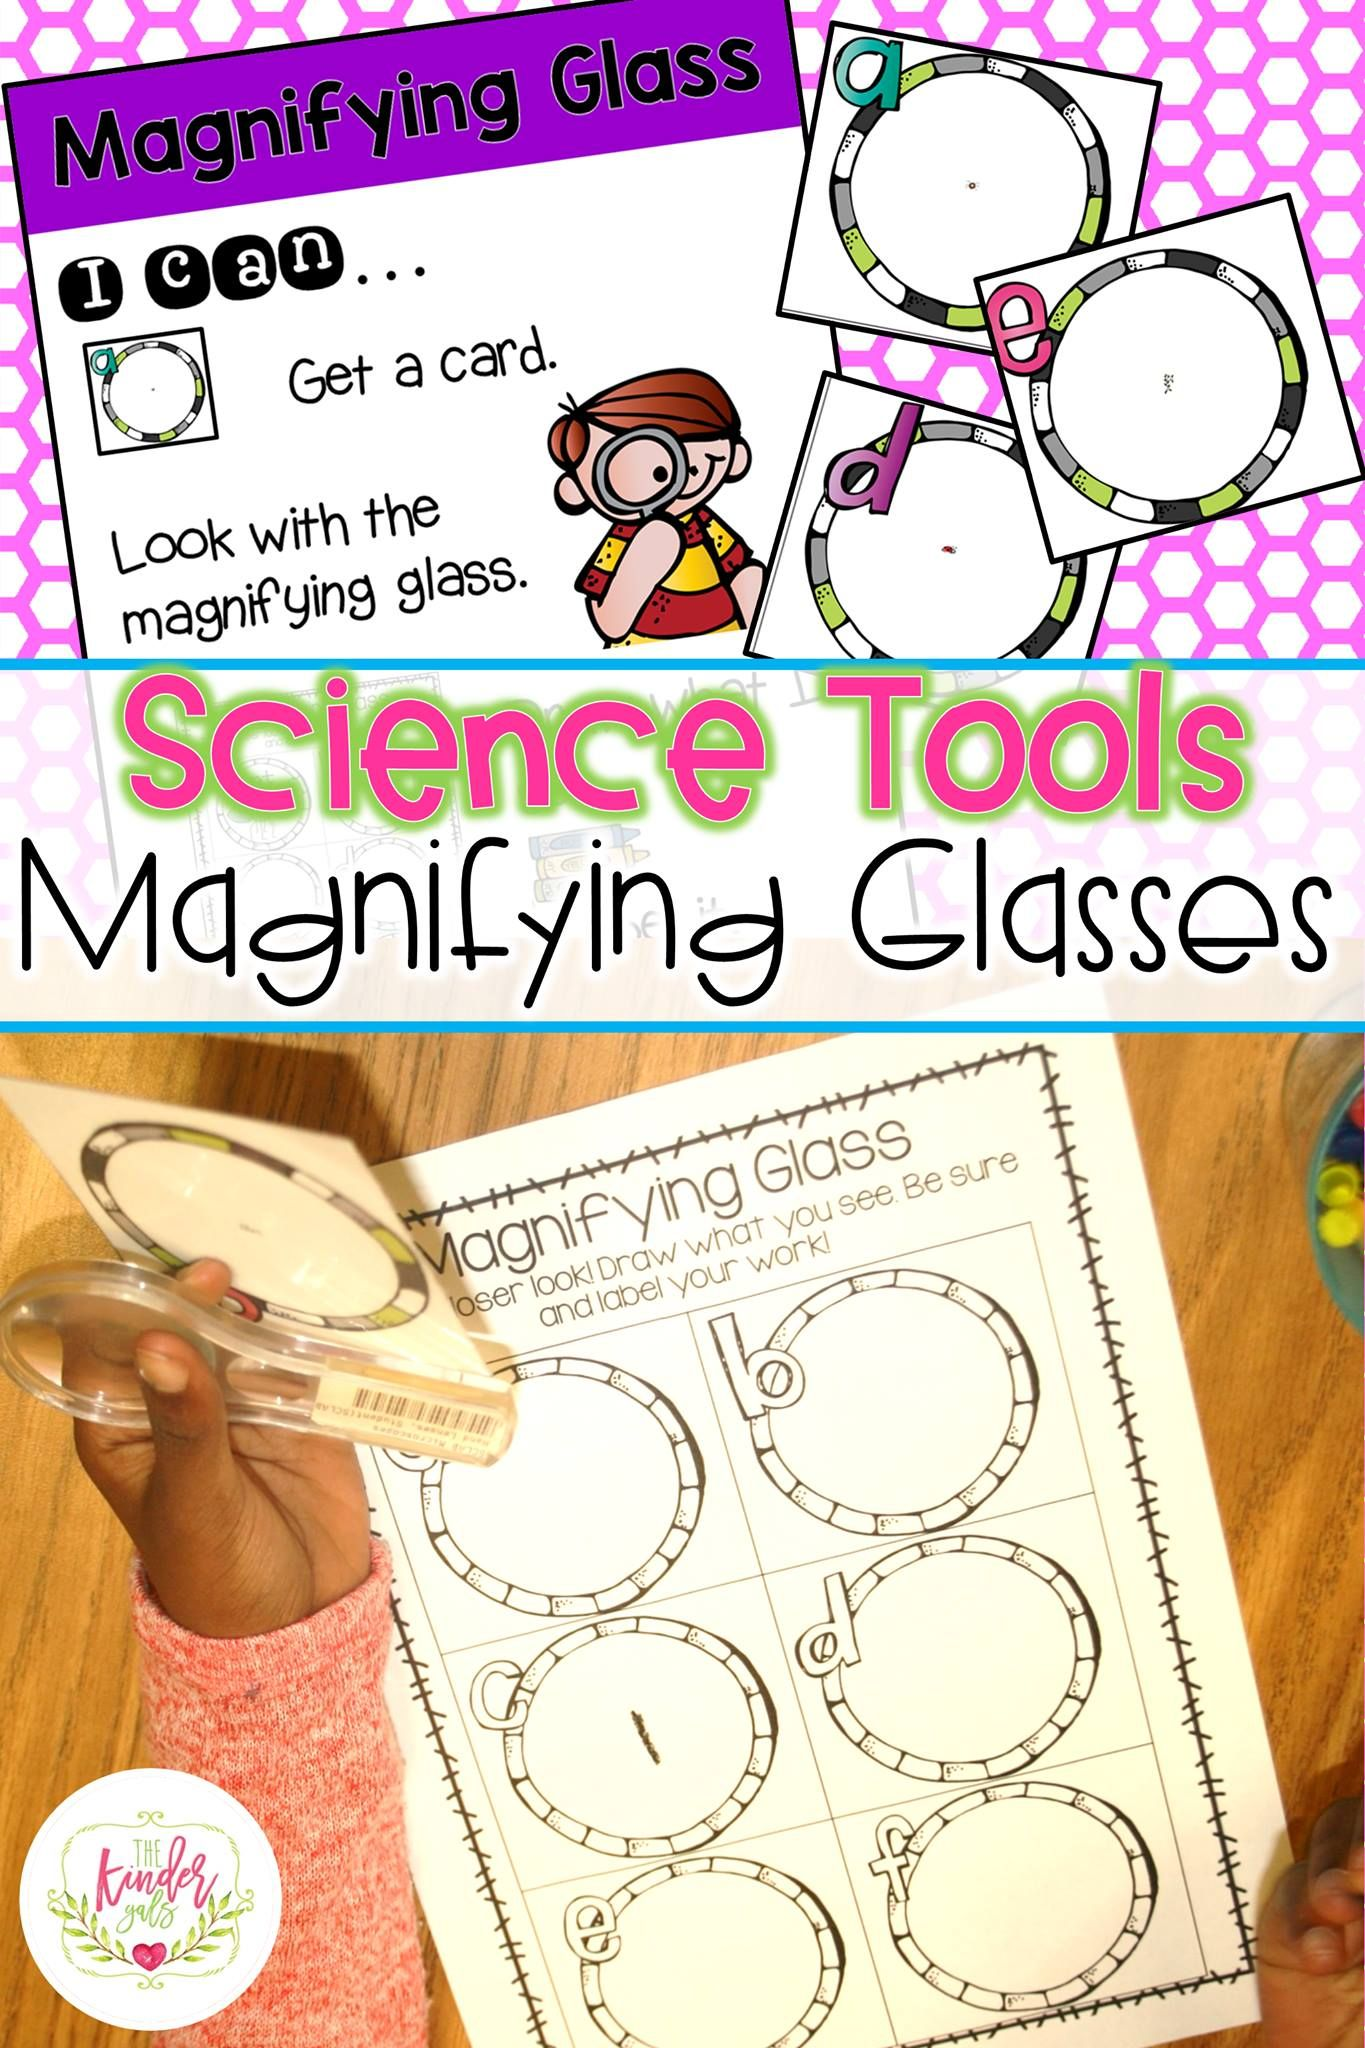 Science Tools For Kindergarten Lessons And Activities For Using Science Materials Like Magnifying Glasses And More Scientific Method Science Tools Science [ 2048 x 1365 Pixel ]